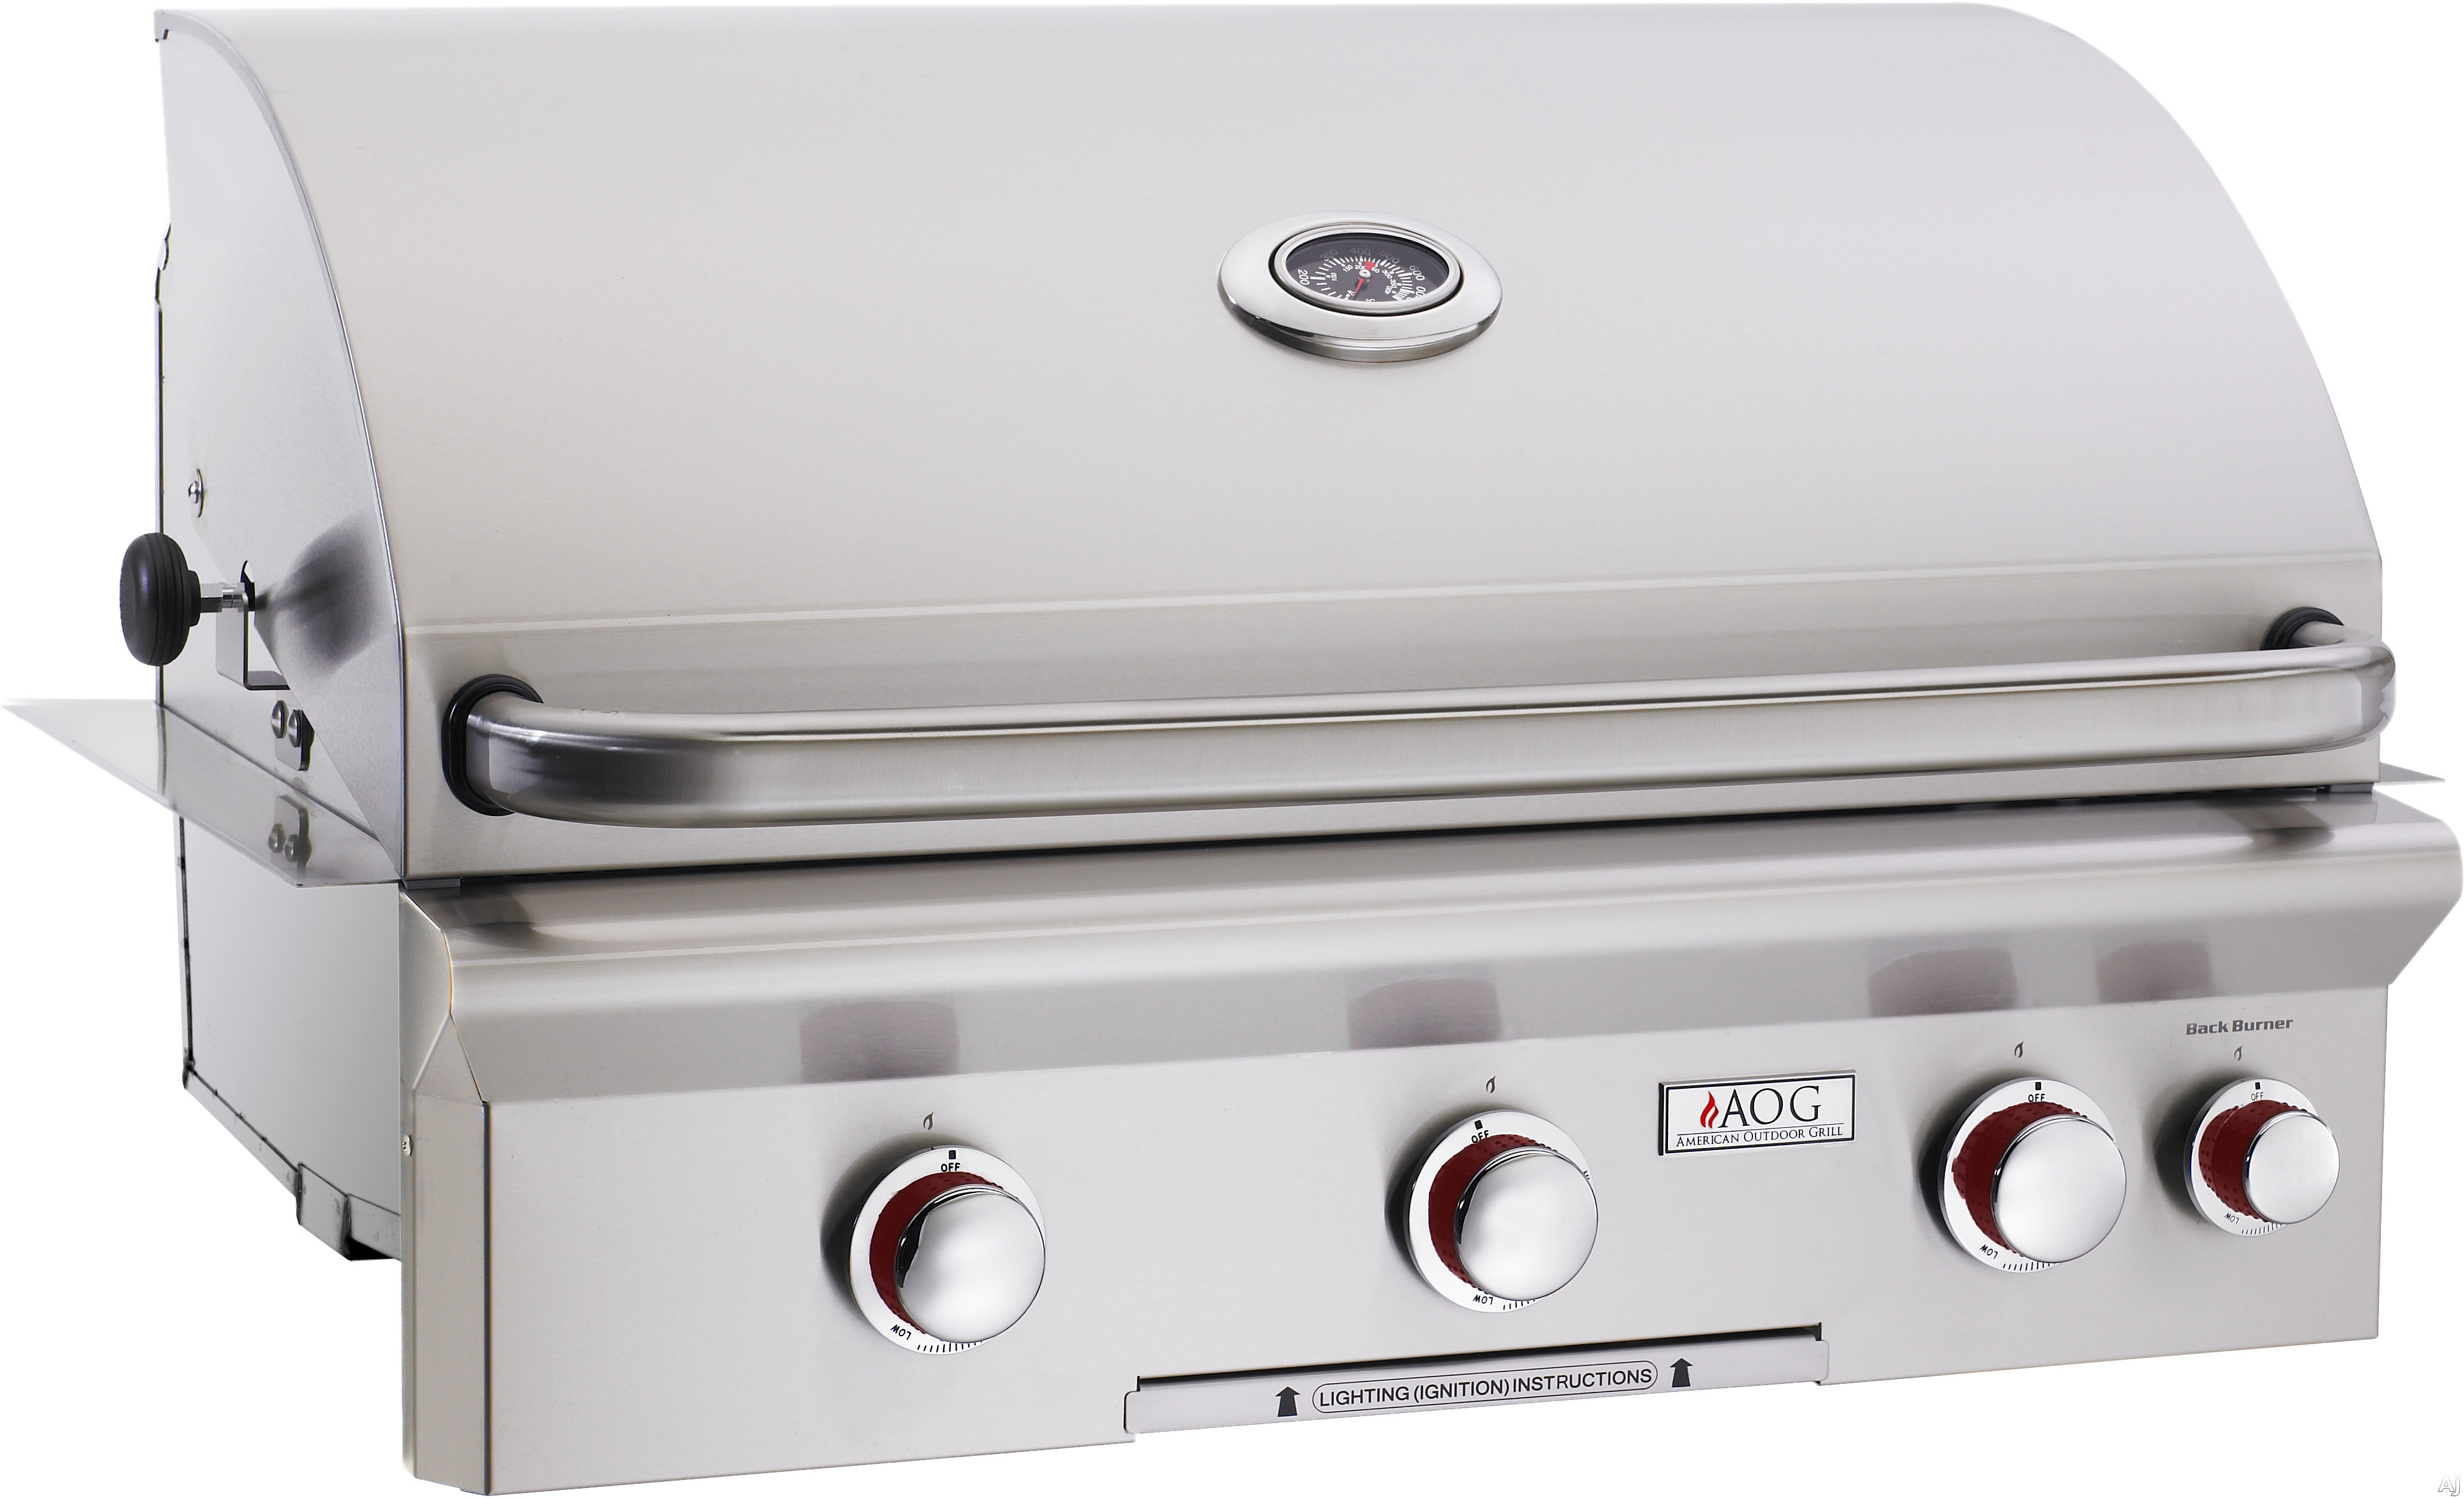 American Outdoor Grill 30nbt00sp 30 Inch Built In Gas With 540 Sq Cooking Surface 3 15 000 Btu Primary Burners Og Thermometer And Stainless